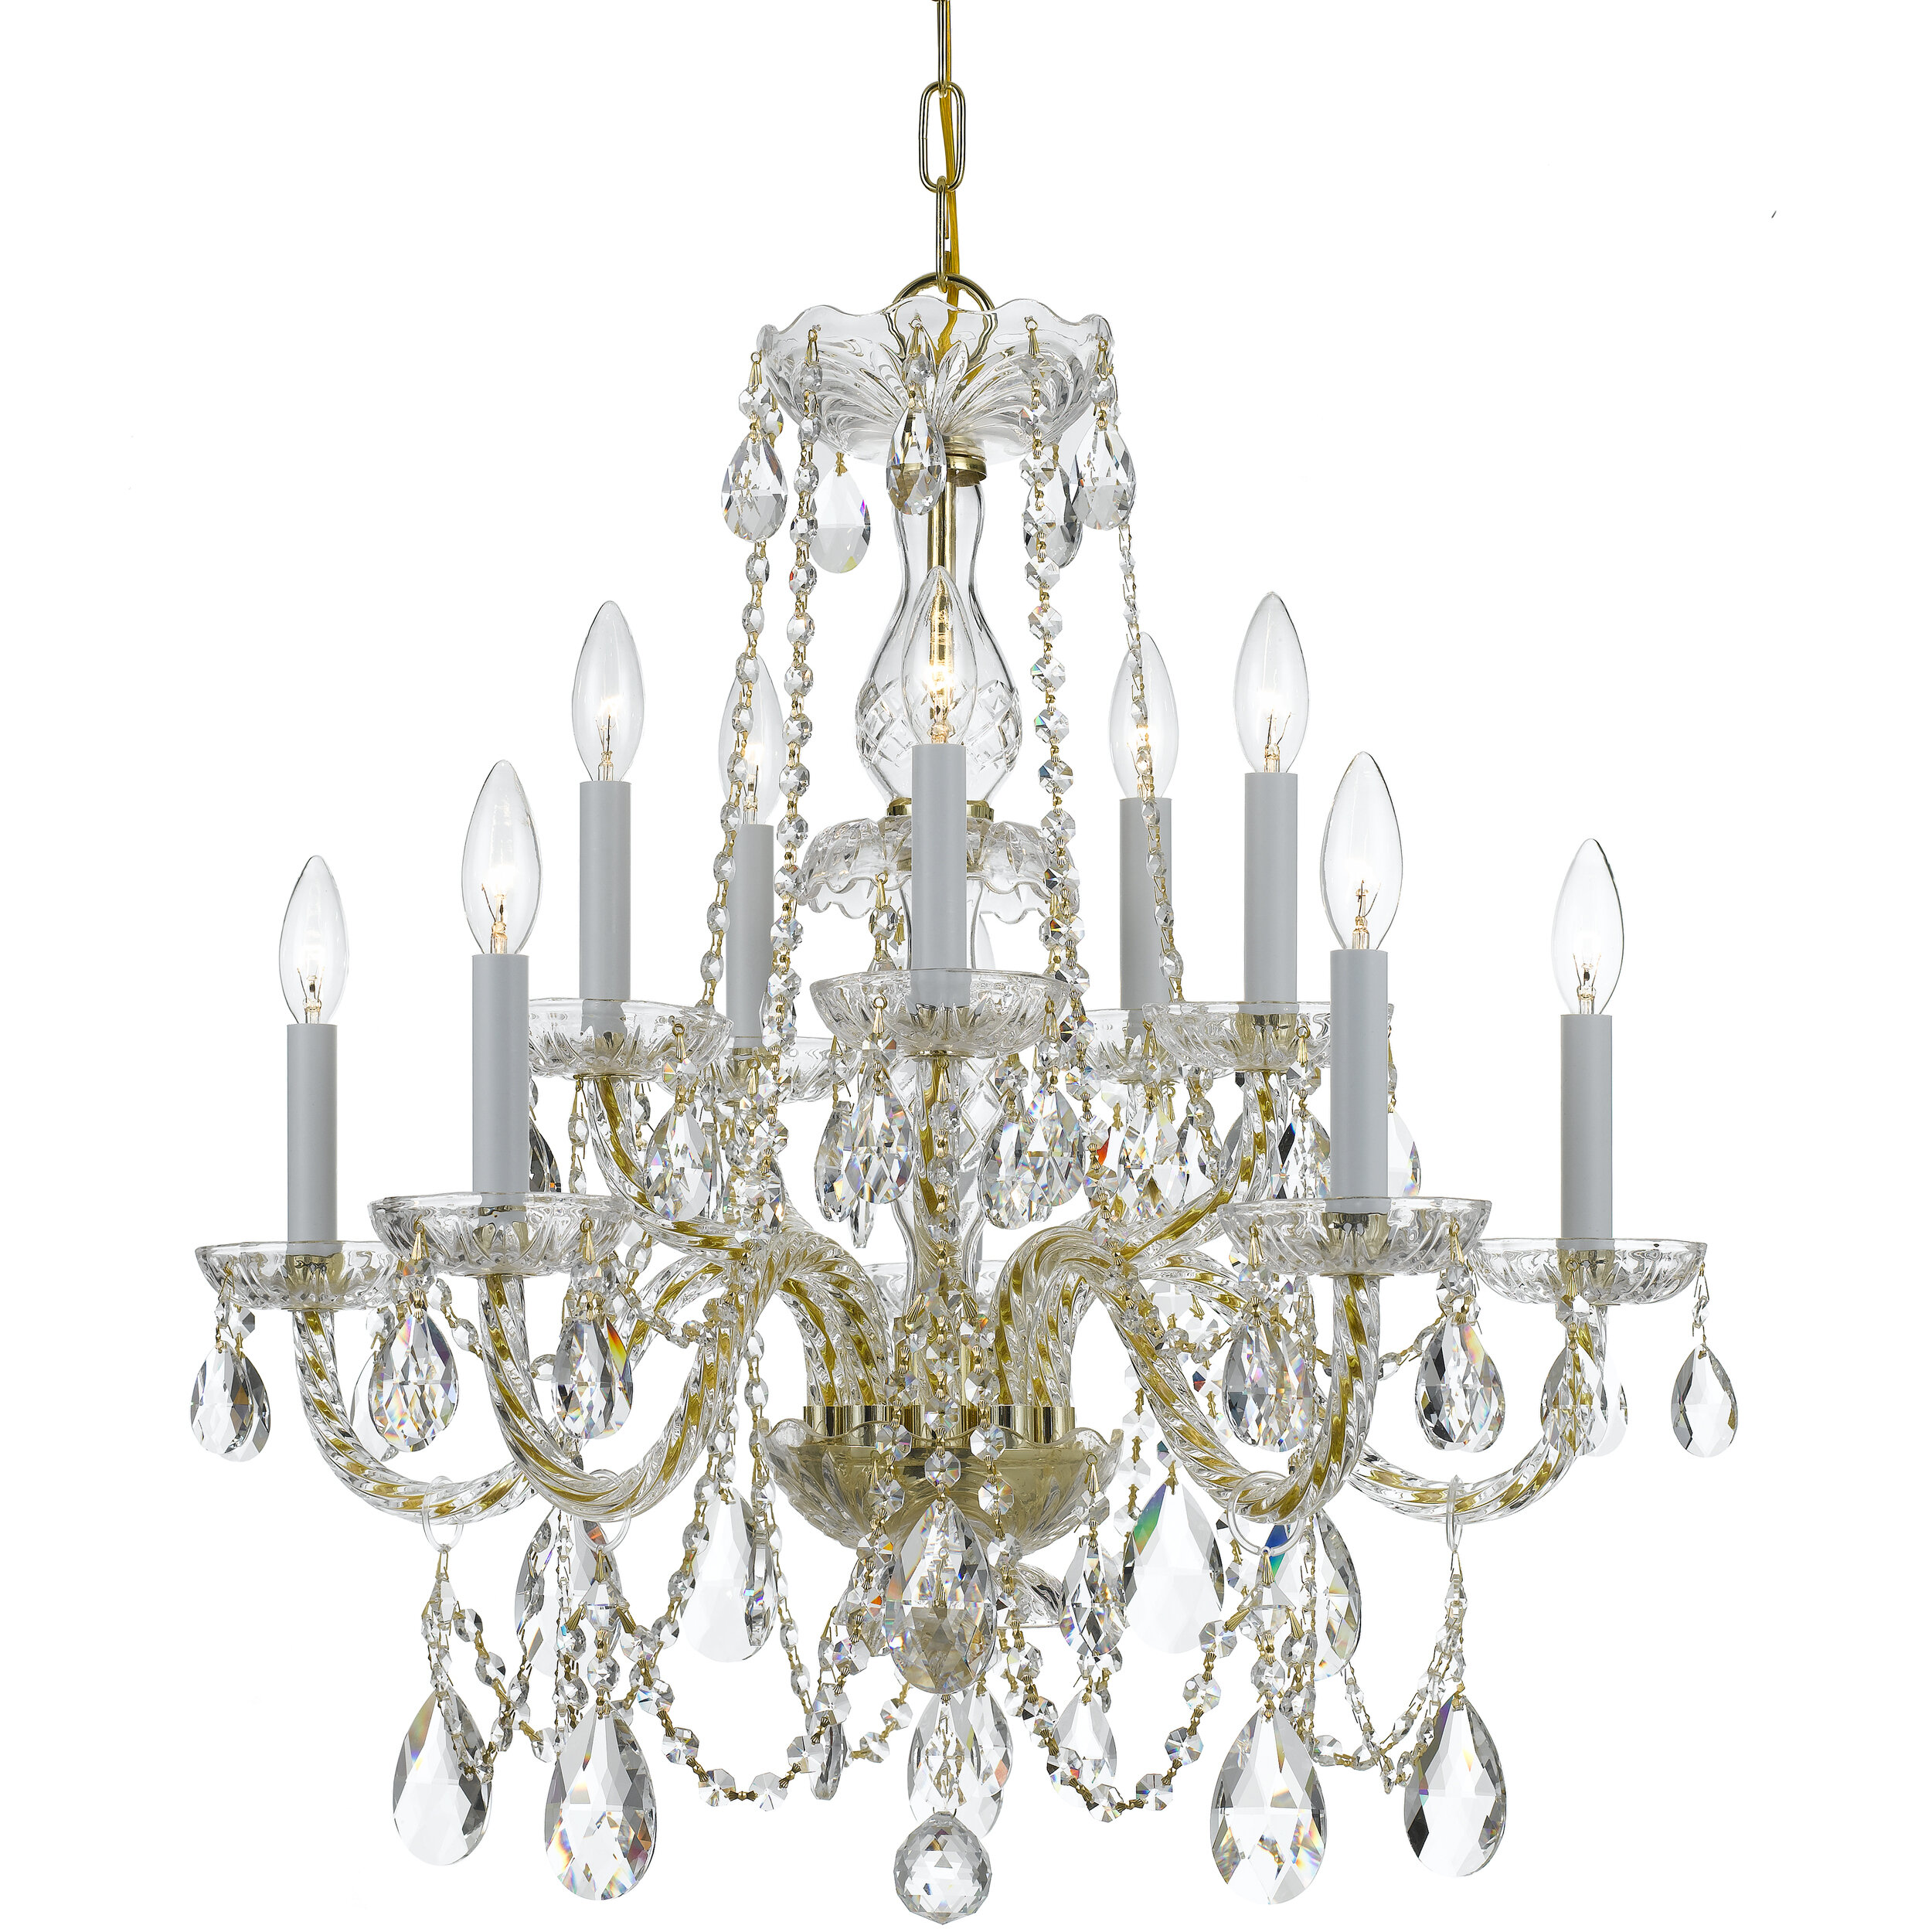 House Of Hampton Milan 10 Light Candle Style Classic Traditional Chandelier With Crystal Accents Reviews Wayfair